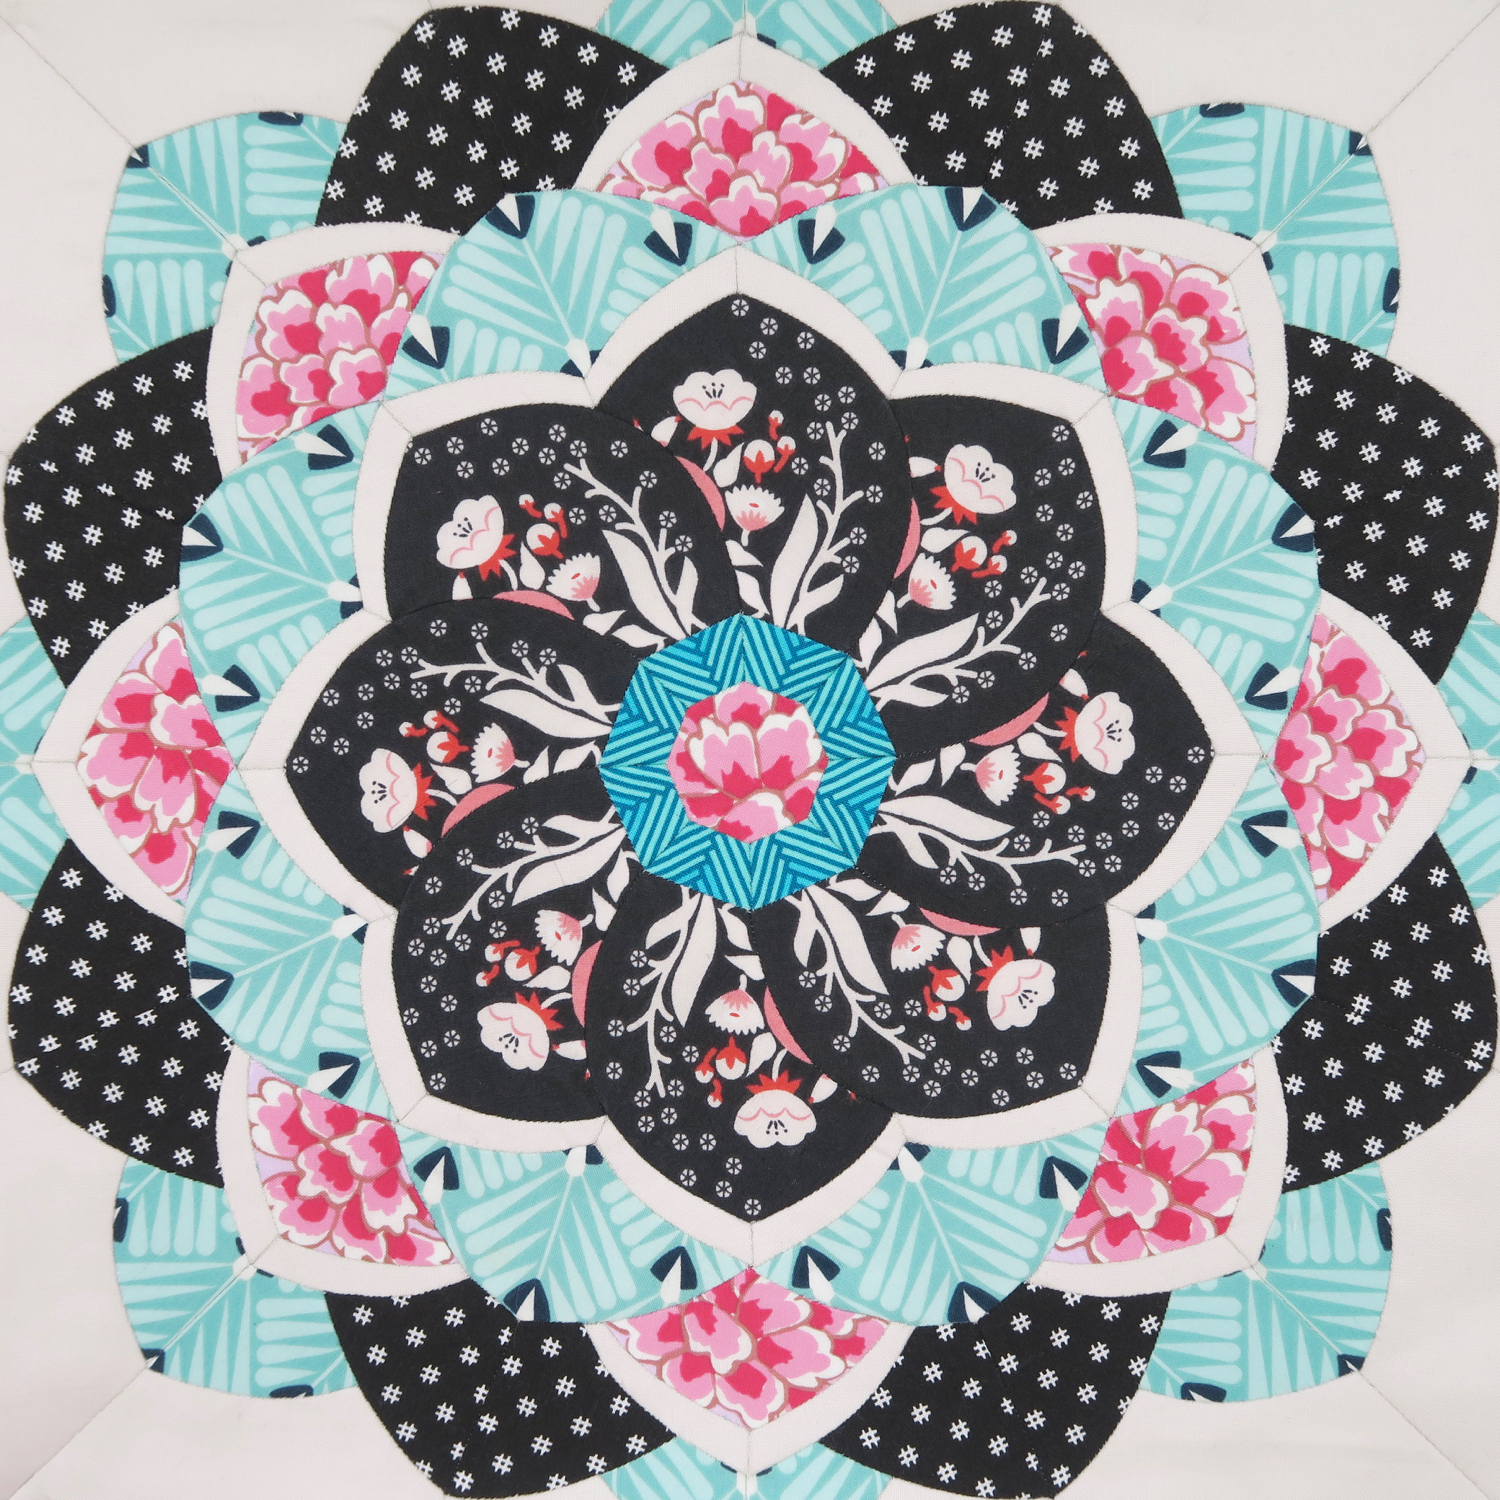 Flossie teacakes peony english paper piecing pattern maxwellsz